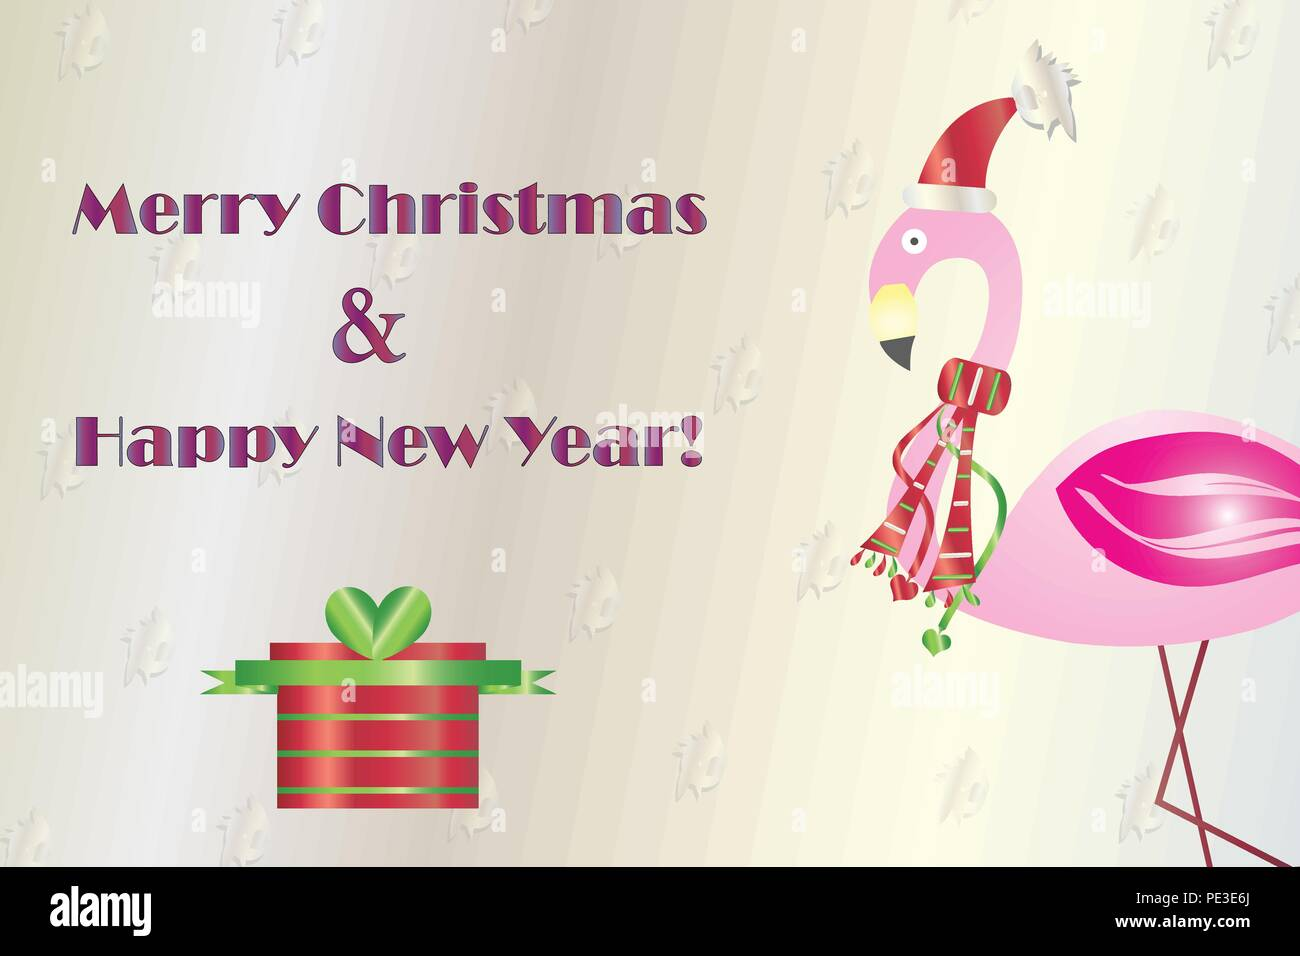 merry christmas and happy new year card with flamingo vector ...